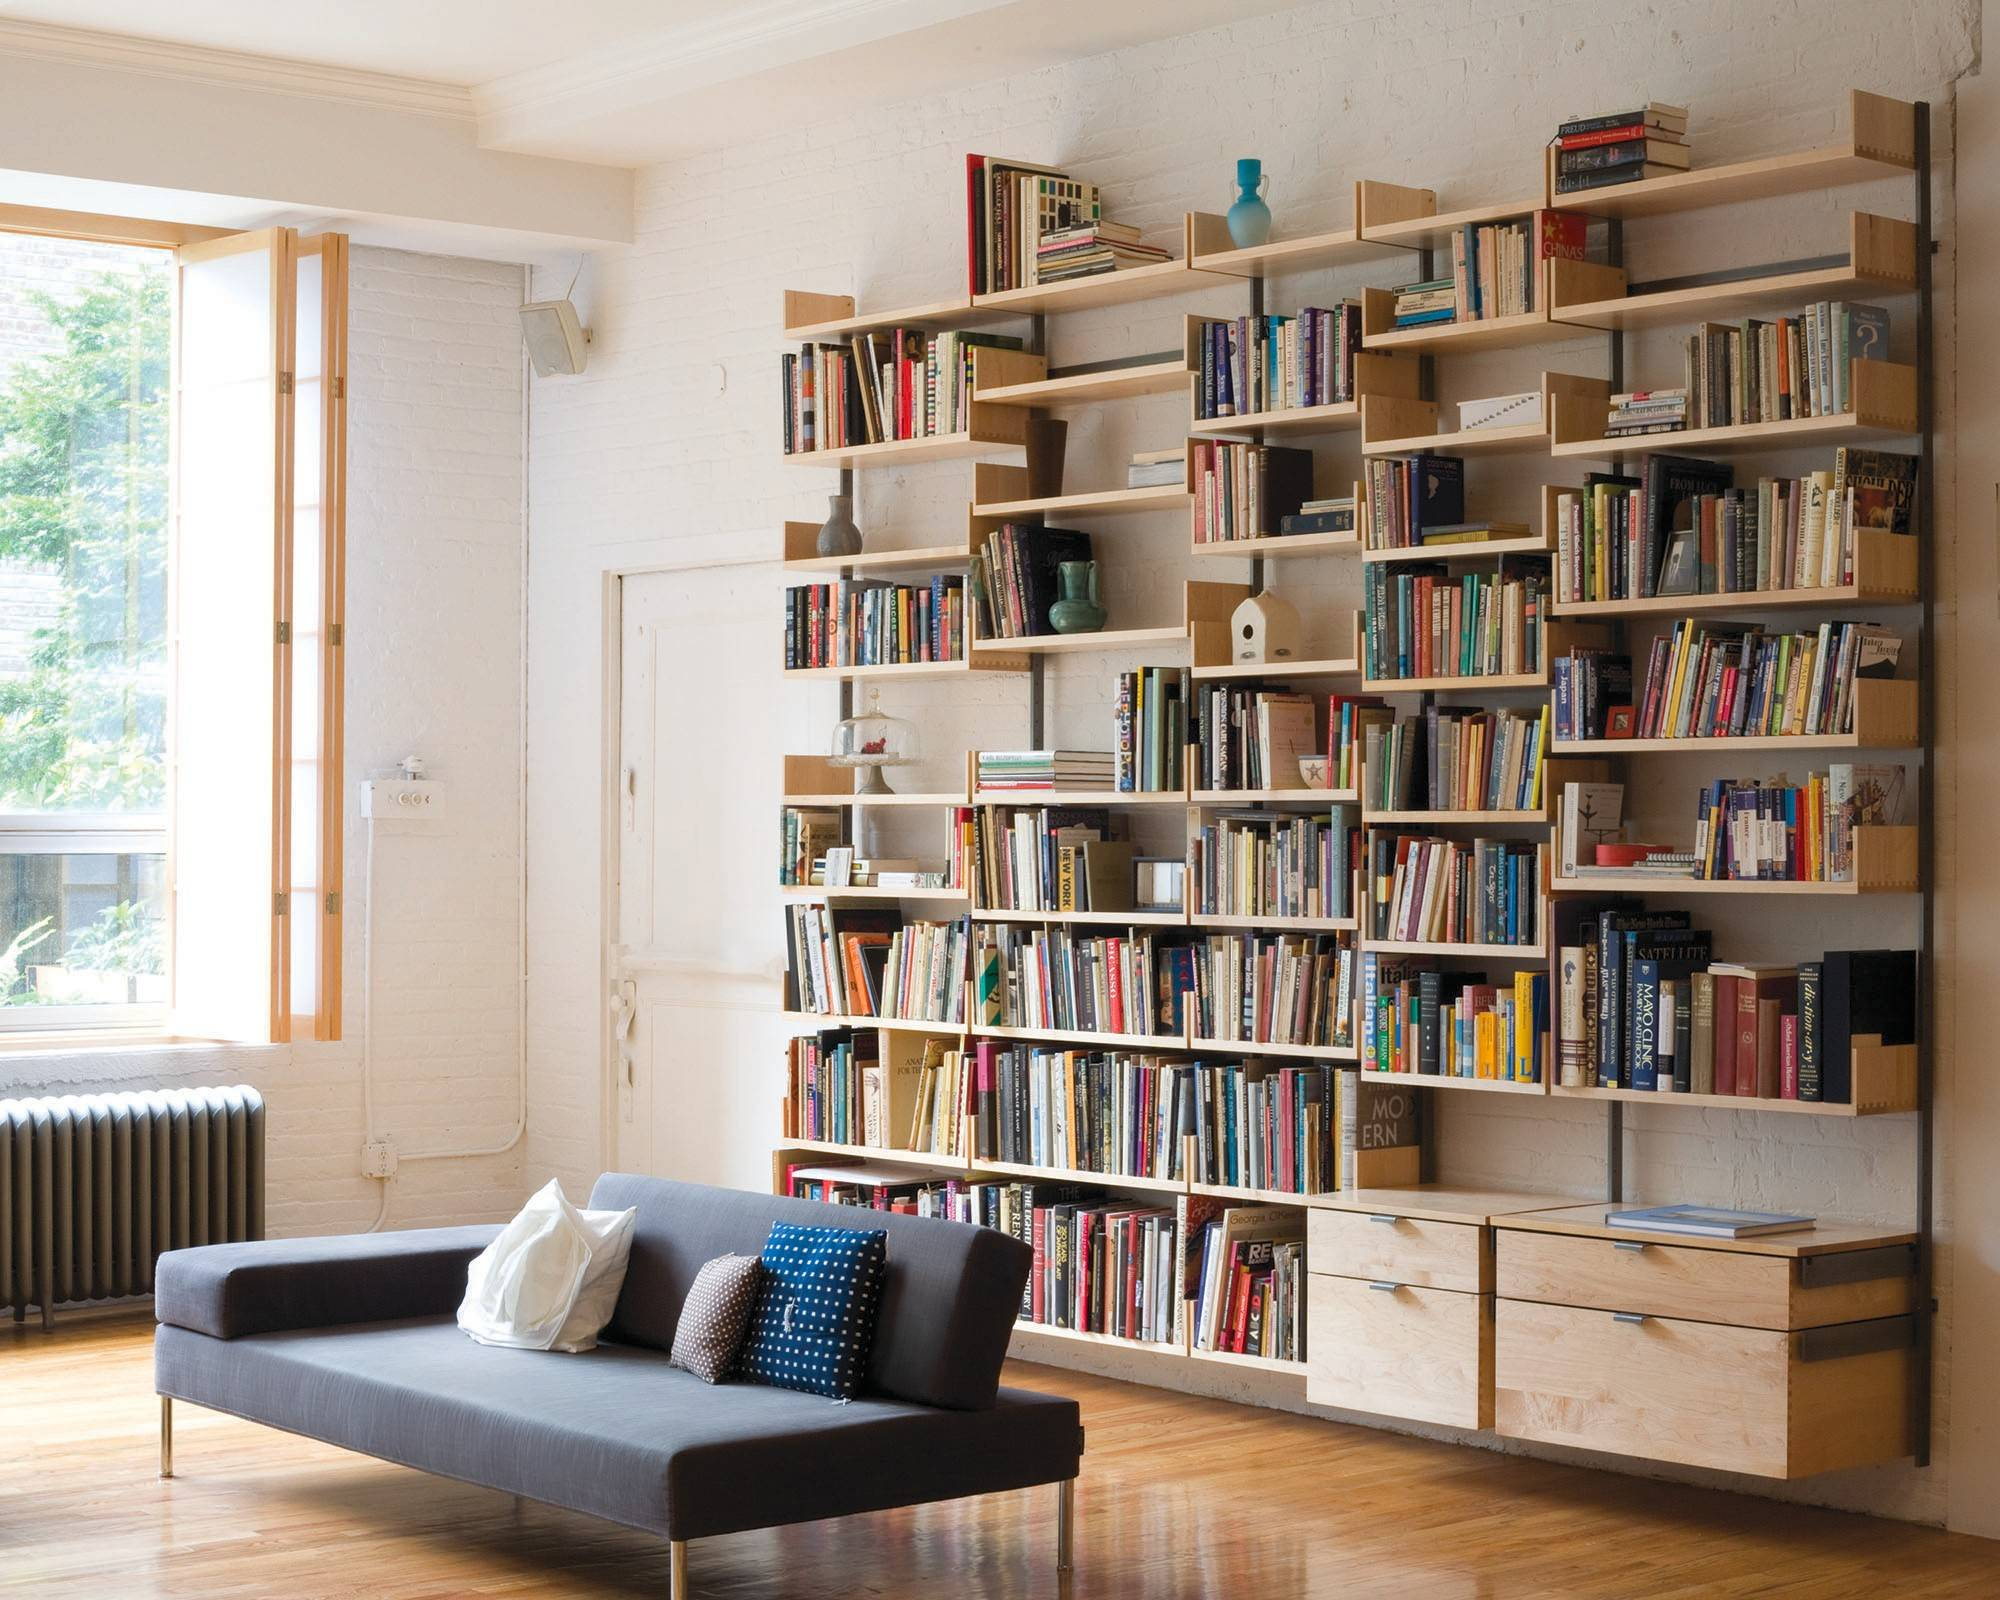 If custom built-ins aren't in the cards for displaying your books, try a modular, expandable system such as Atlas Industries' AS4.